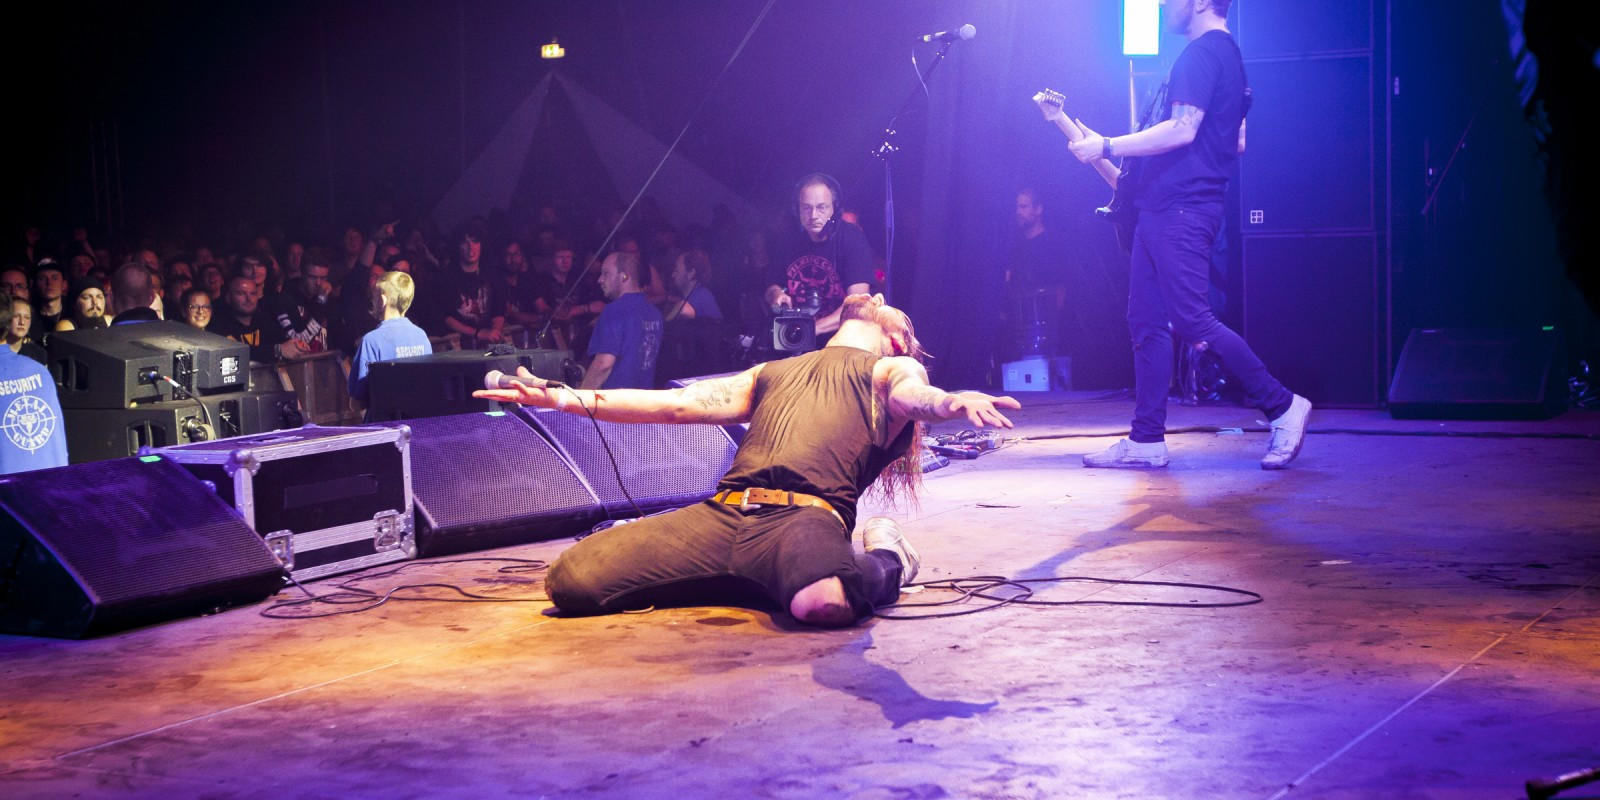 While She Sleeps at Wacken Open Air 2016.